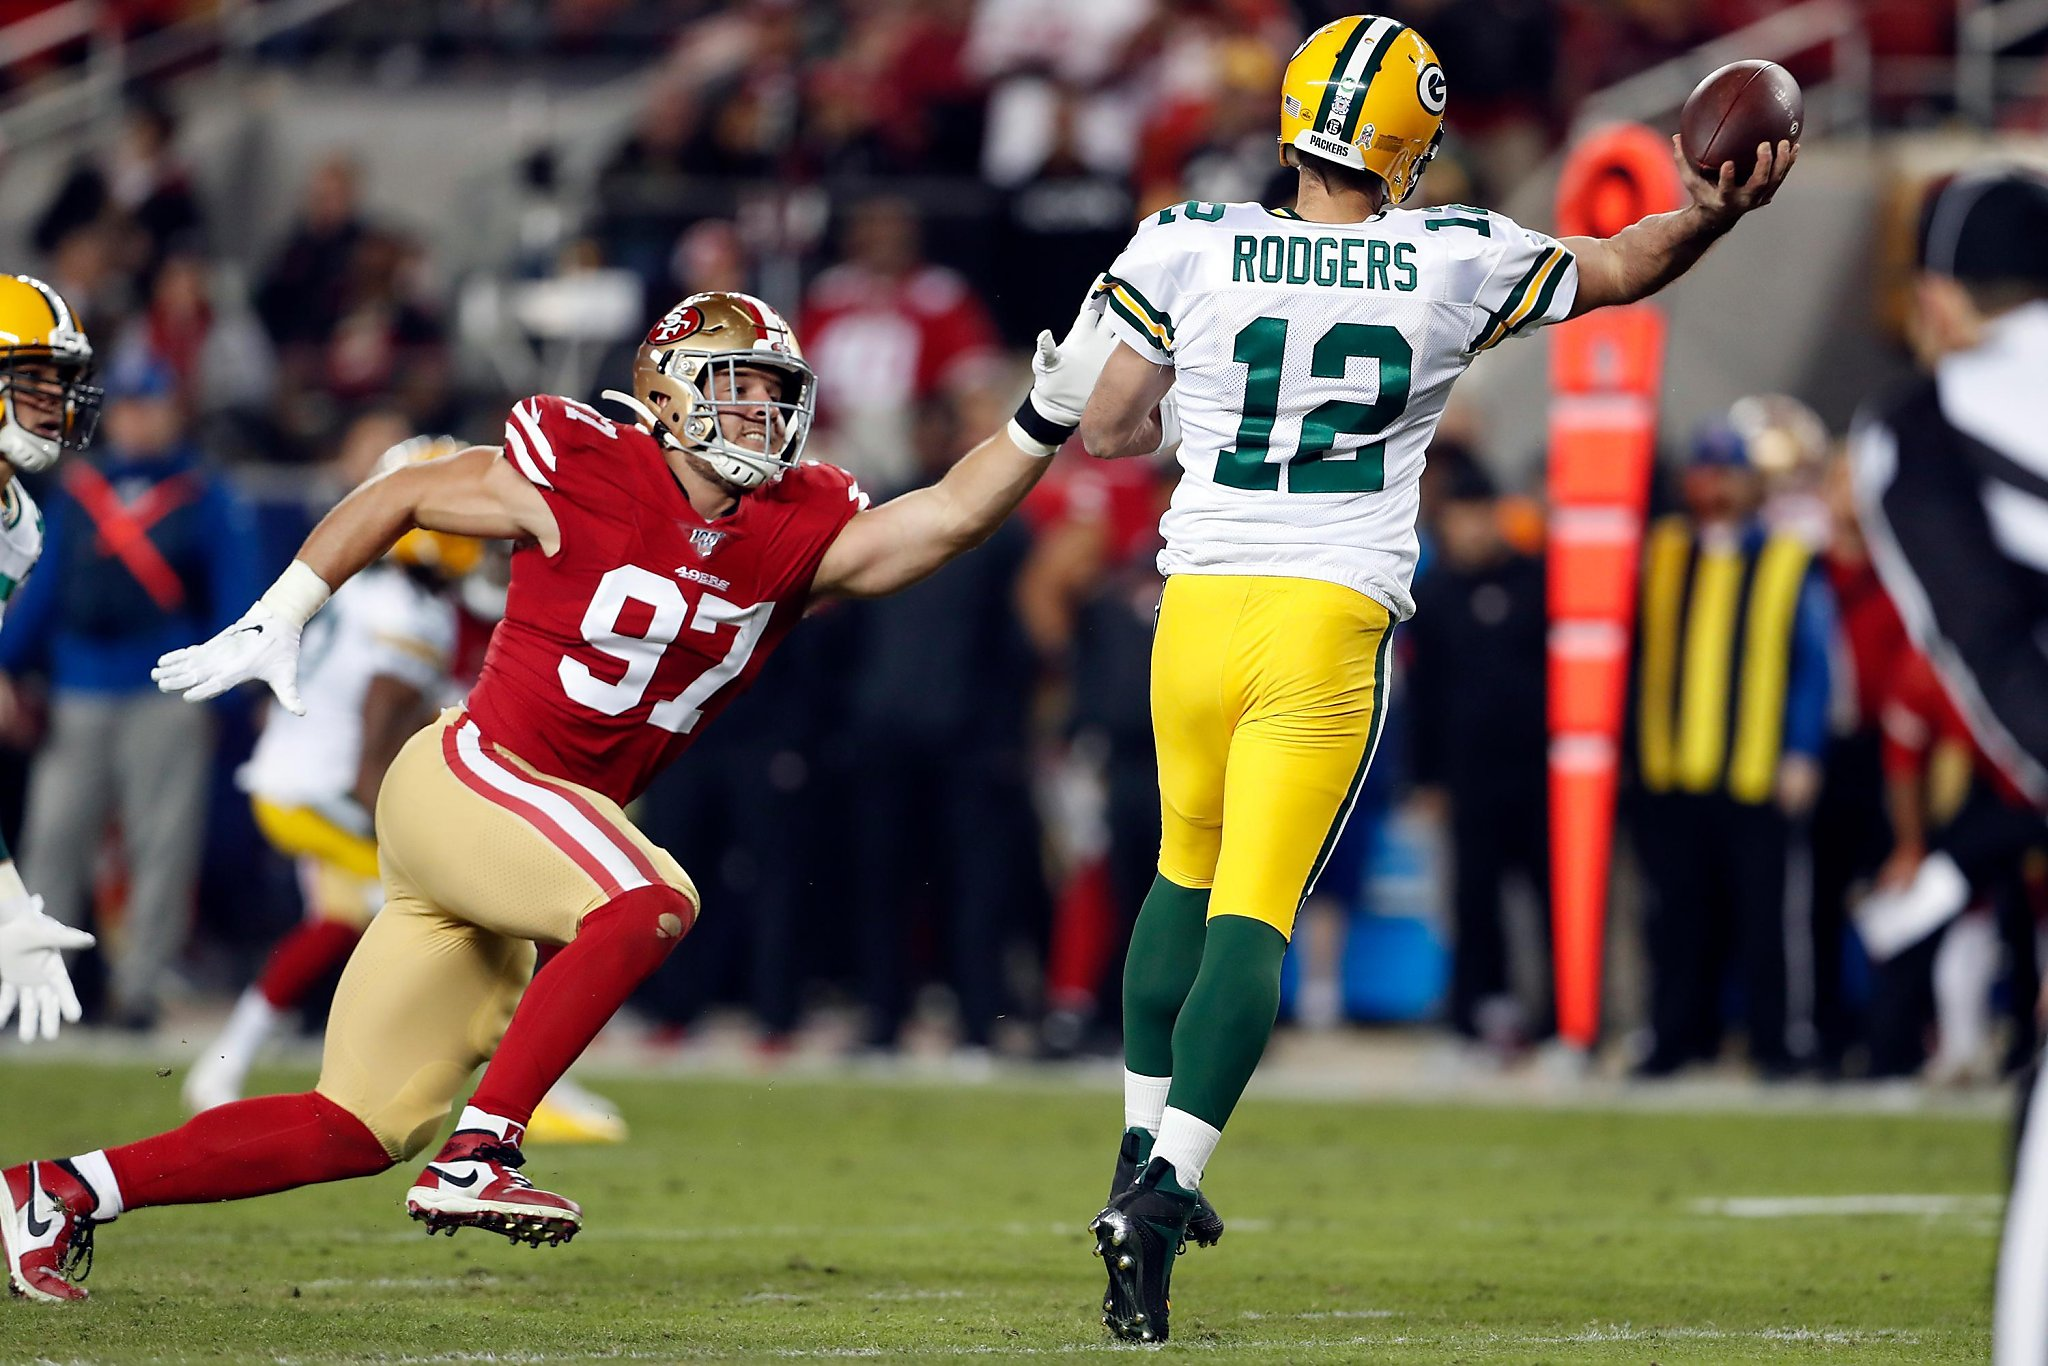 49ers' Jimmy Garoppolo vs. Packers' Aaron Rodgers: Who will win this generational battle?